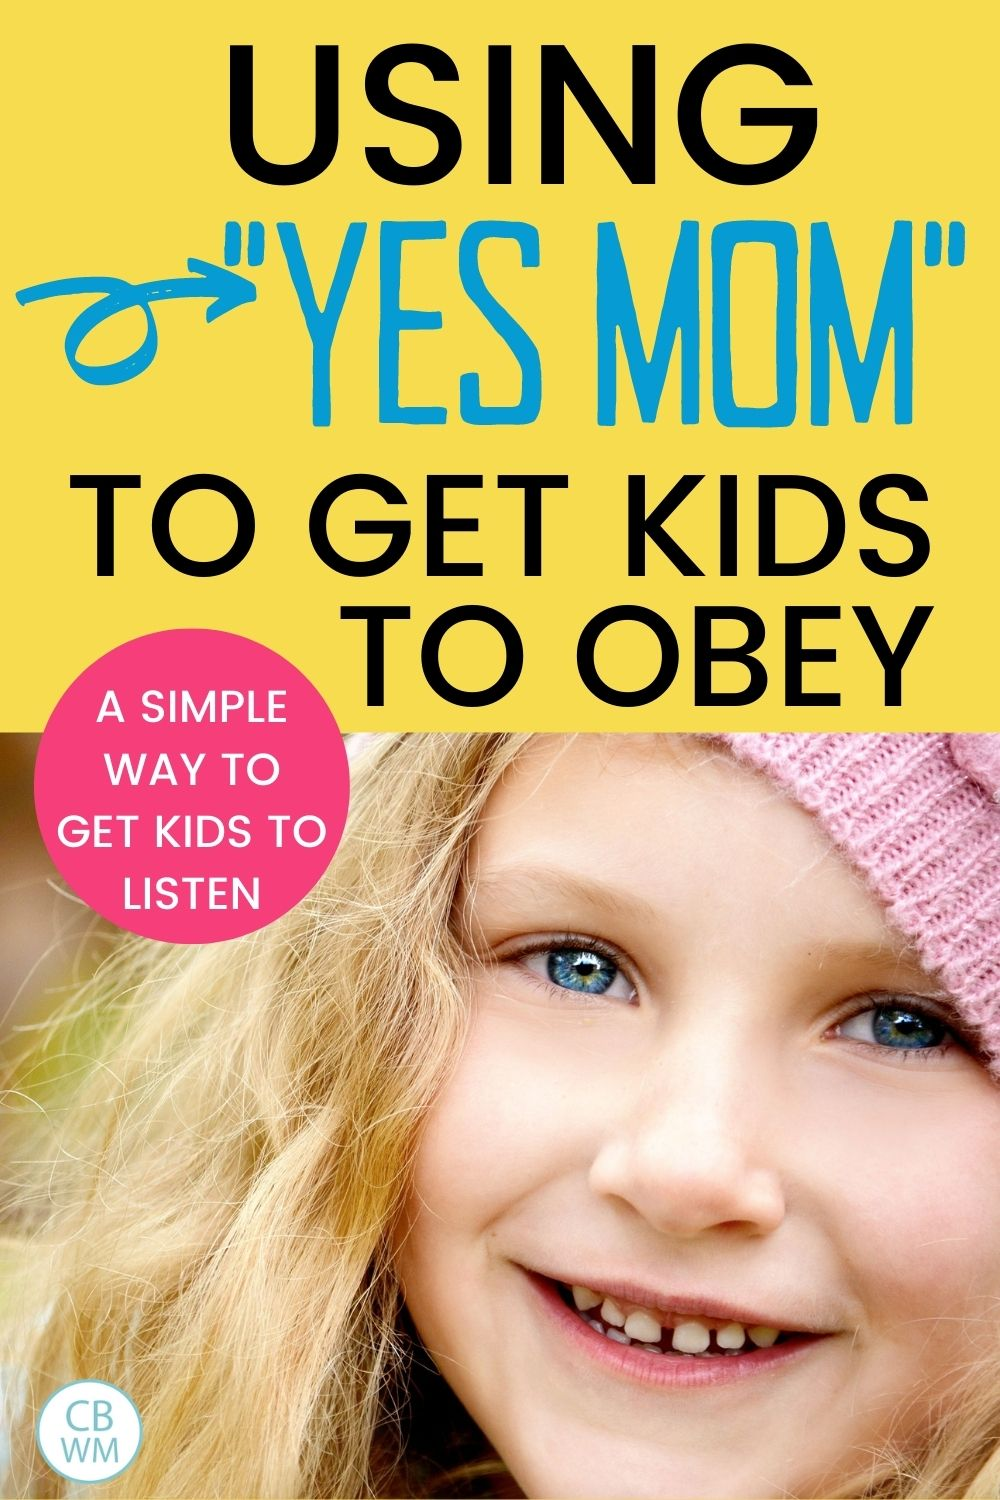 Yes mom to get kids to obey